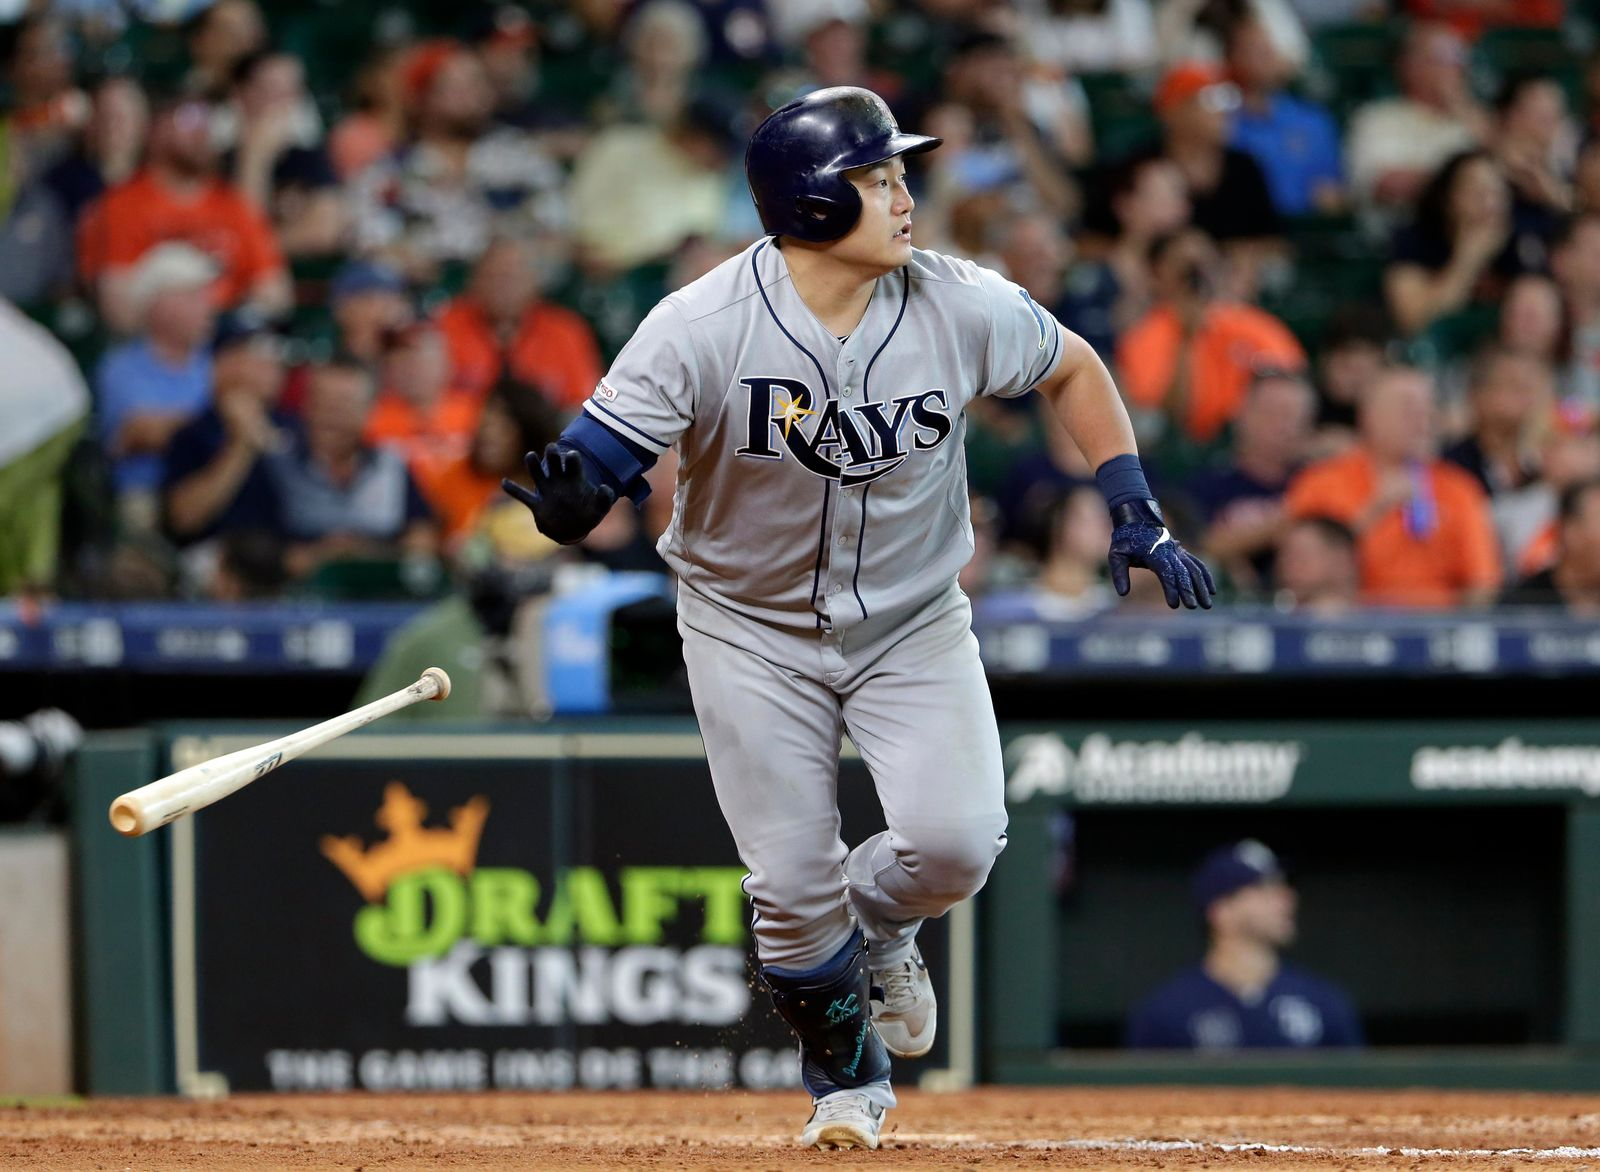 Tampa Bay Rays' Ji-Man Choi flips his bat as heads to first base on his two-un RBI-double during the seventh inning of a baseball game against the Houston Astros, Thursday, Aug. 29, 2019, in Houston. (AP Photo/Michael Wyke)